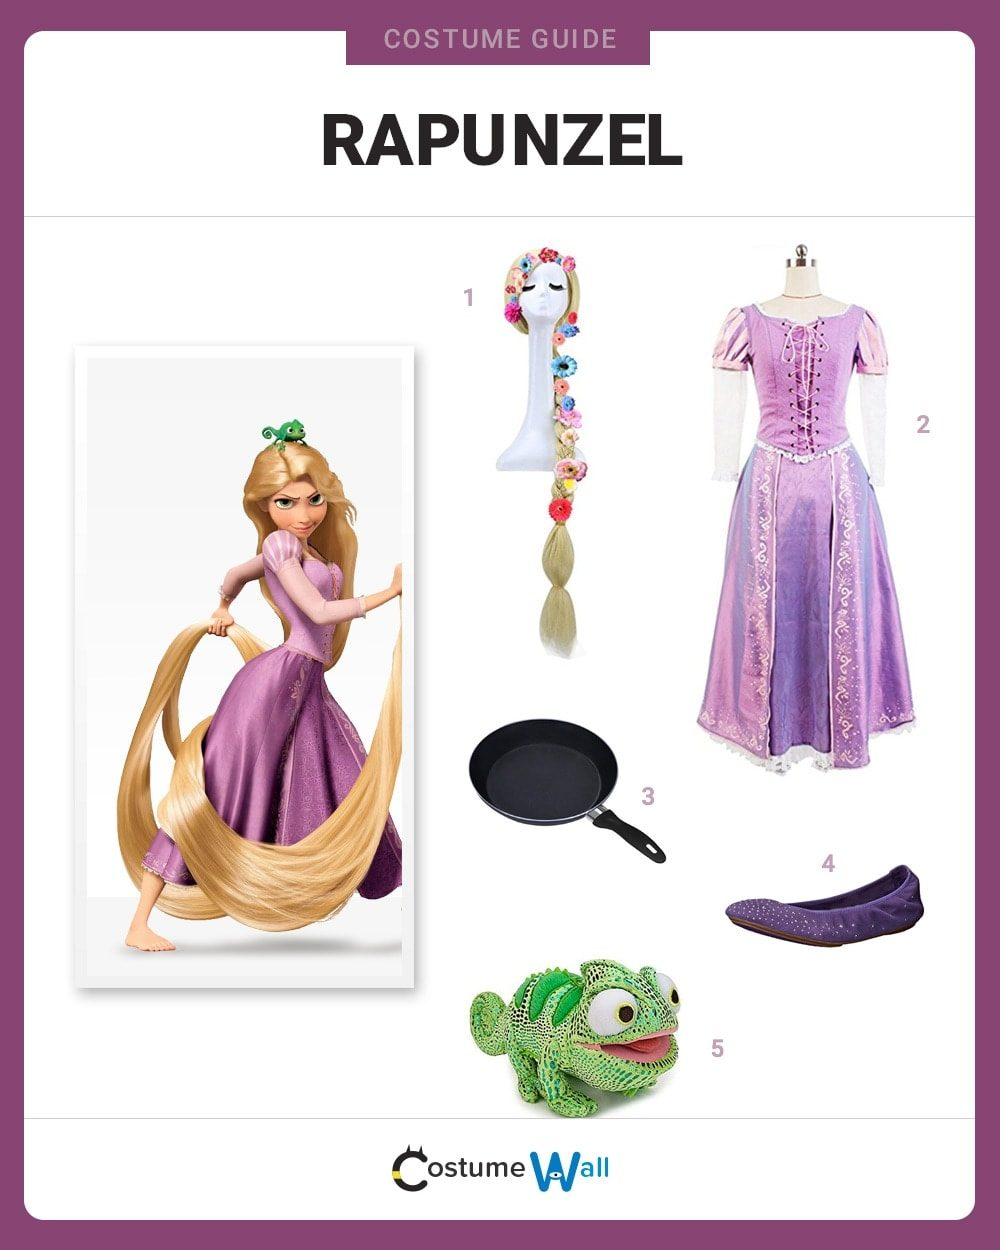 Rapunzel Costume Guide